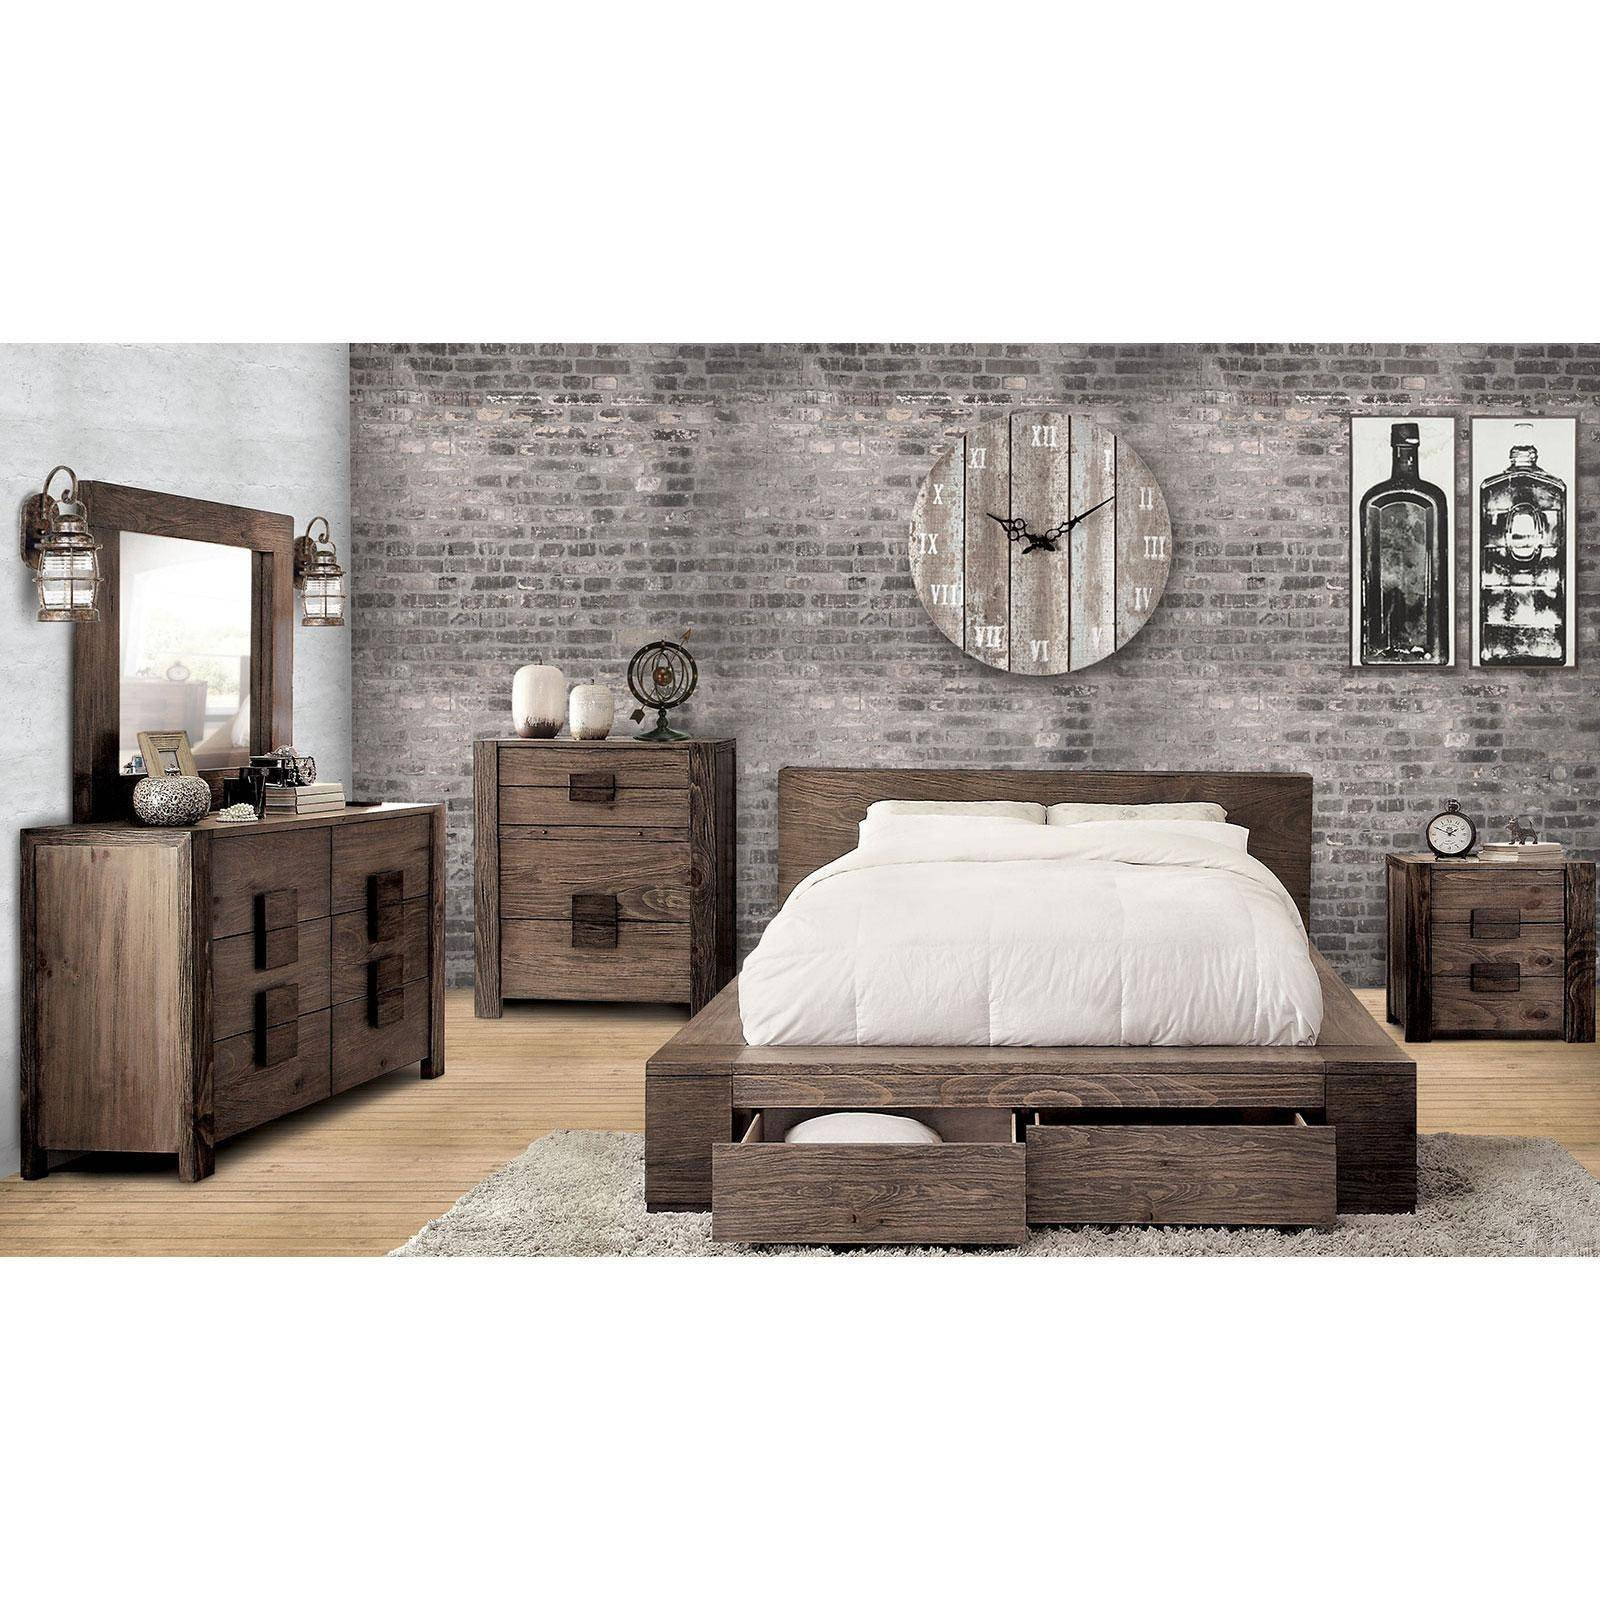 Natural Wood Bedroom Set Awesome Rustic Natural Finish Queen Storage Bedroom Set 4 Pcs